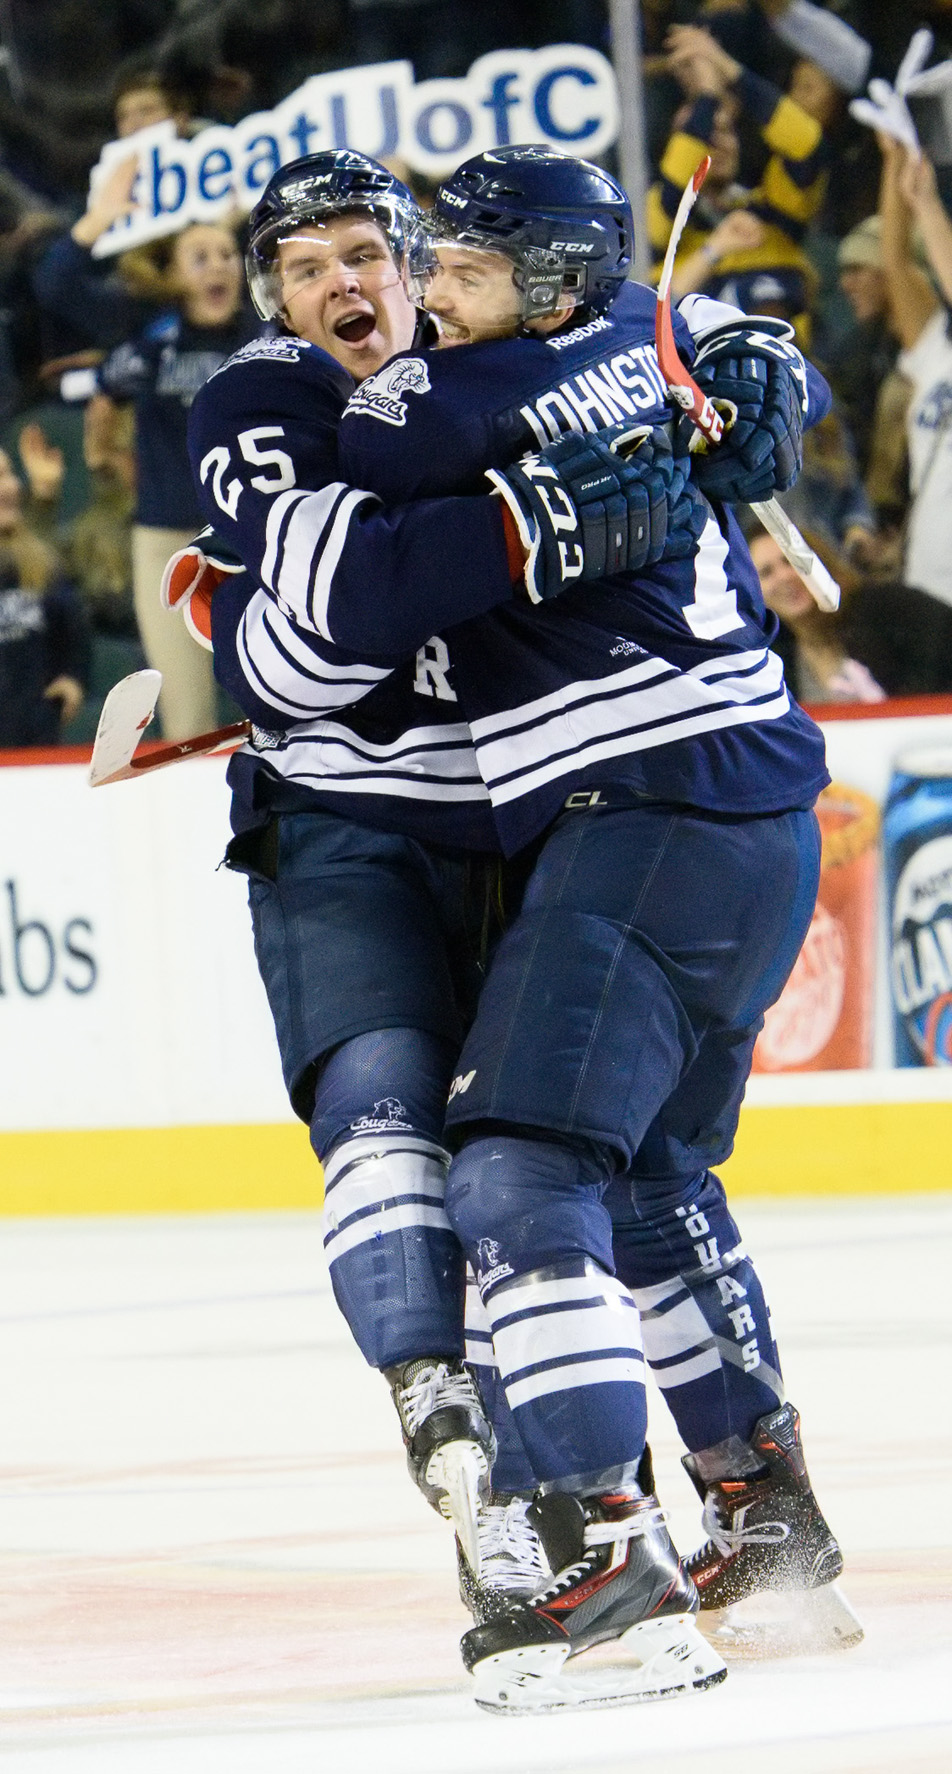 Cougar Cuddle: Mount Royal University defenceman Matt Bellerive, left, celebrates a goal with defenceman Mackenzie Johnston. (Photo by Brooke Hovey/The Press)